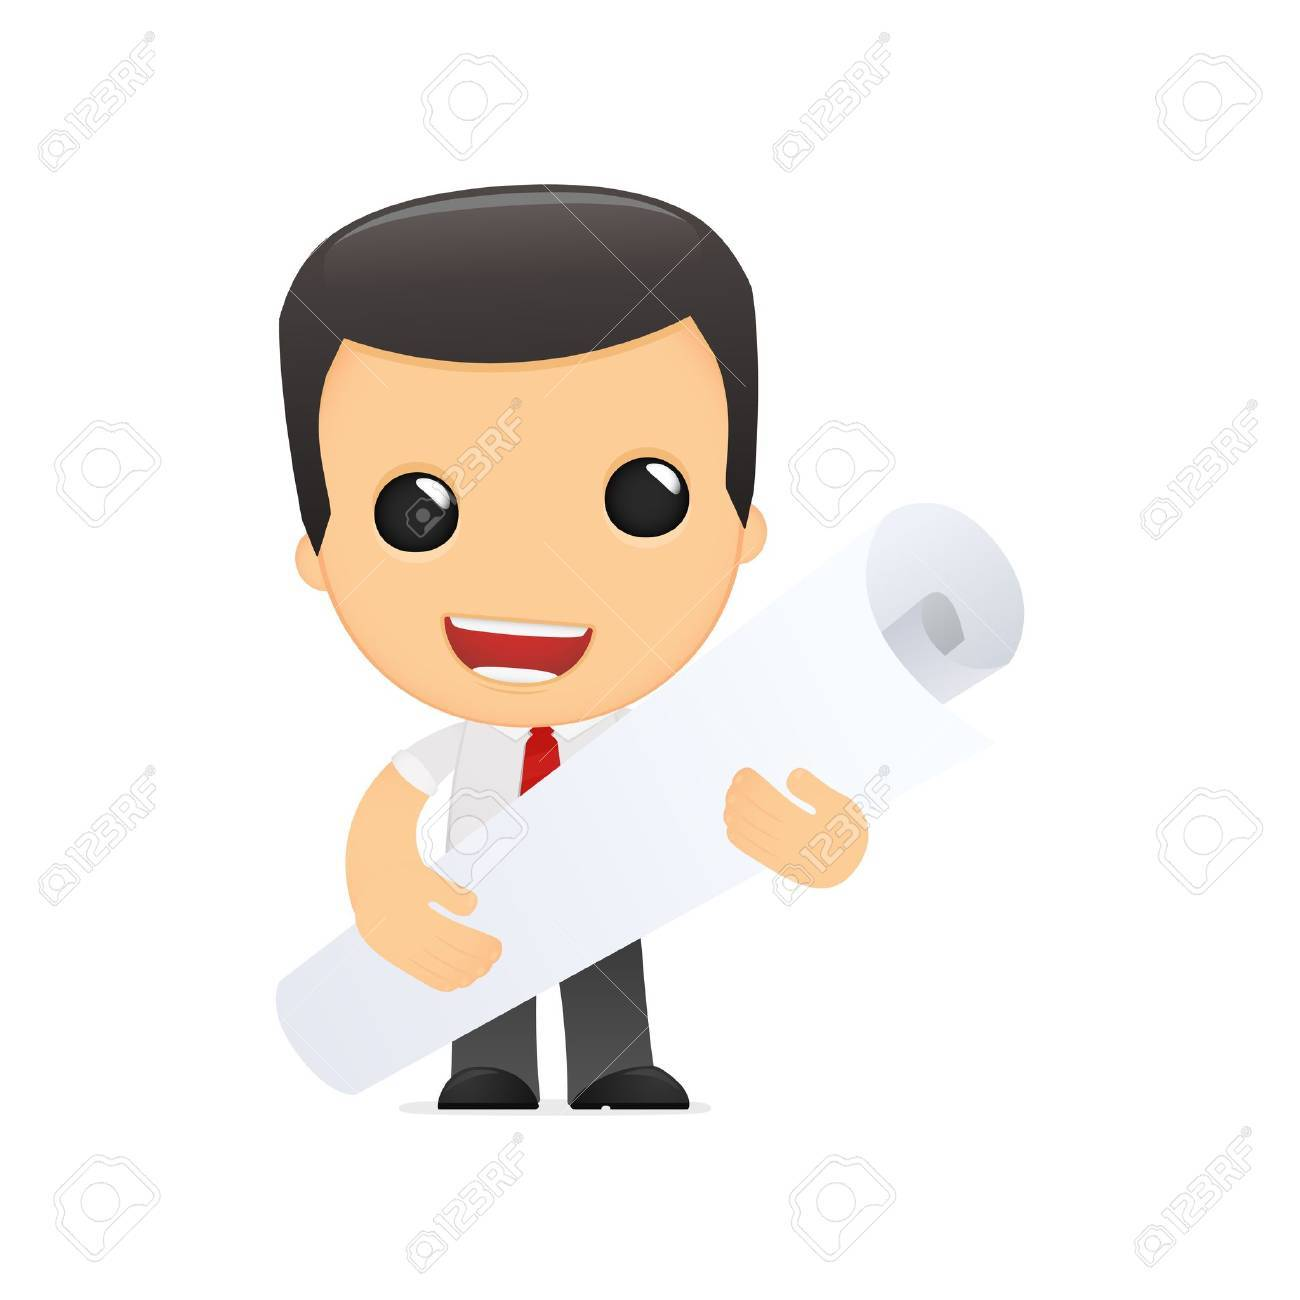 funny cartoon manager in various poses for use in advertising, presentations, brochures, blogs, documents and forms, etc. Stock Vector - 14074775